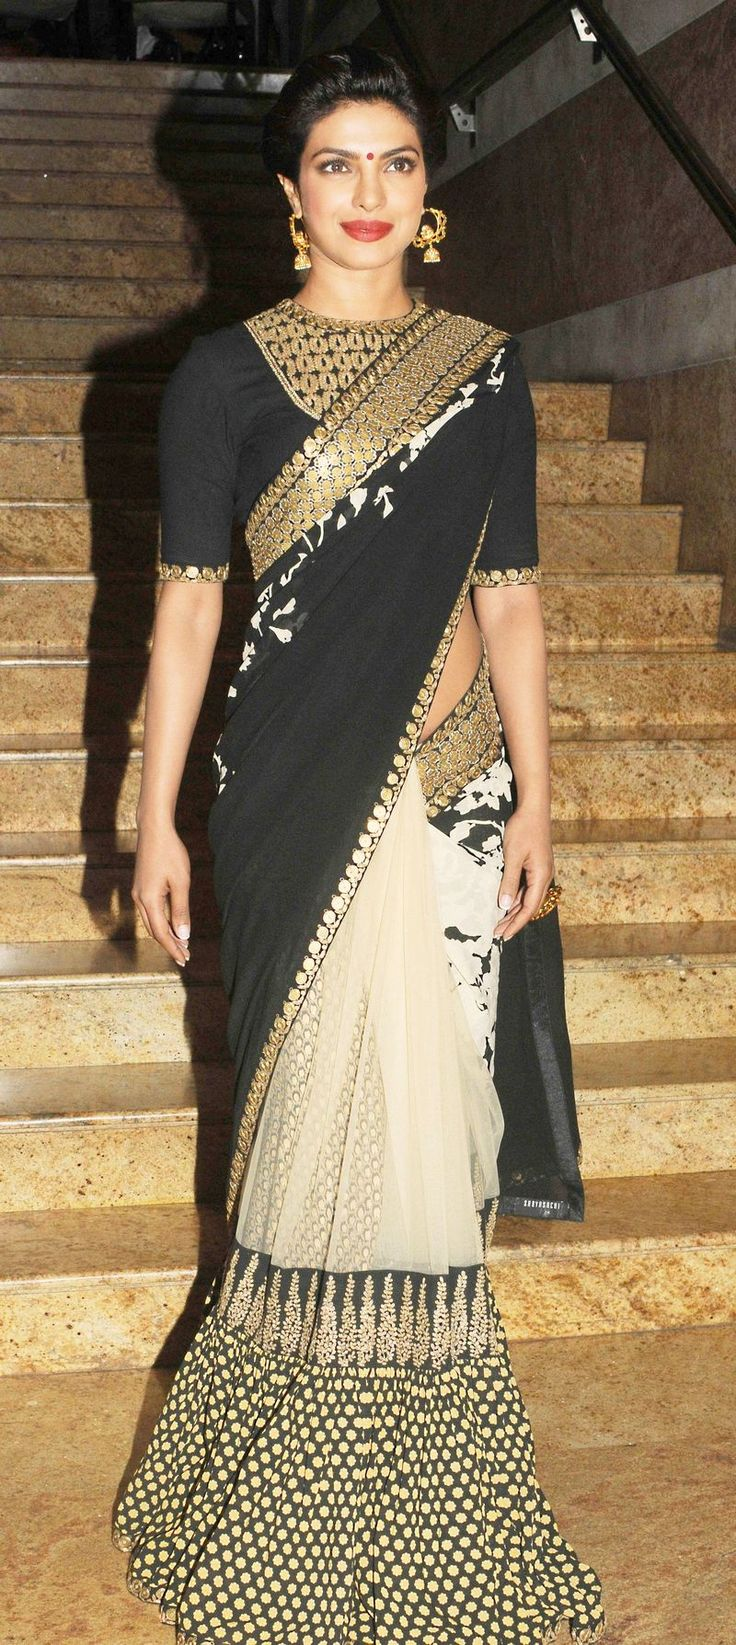 Priyanka Chopra looked statuesque at the launch of Dilip Kumar's autobography. #Style #Bollywood #Fashion #Beauty